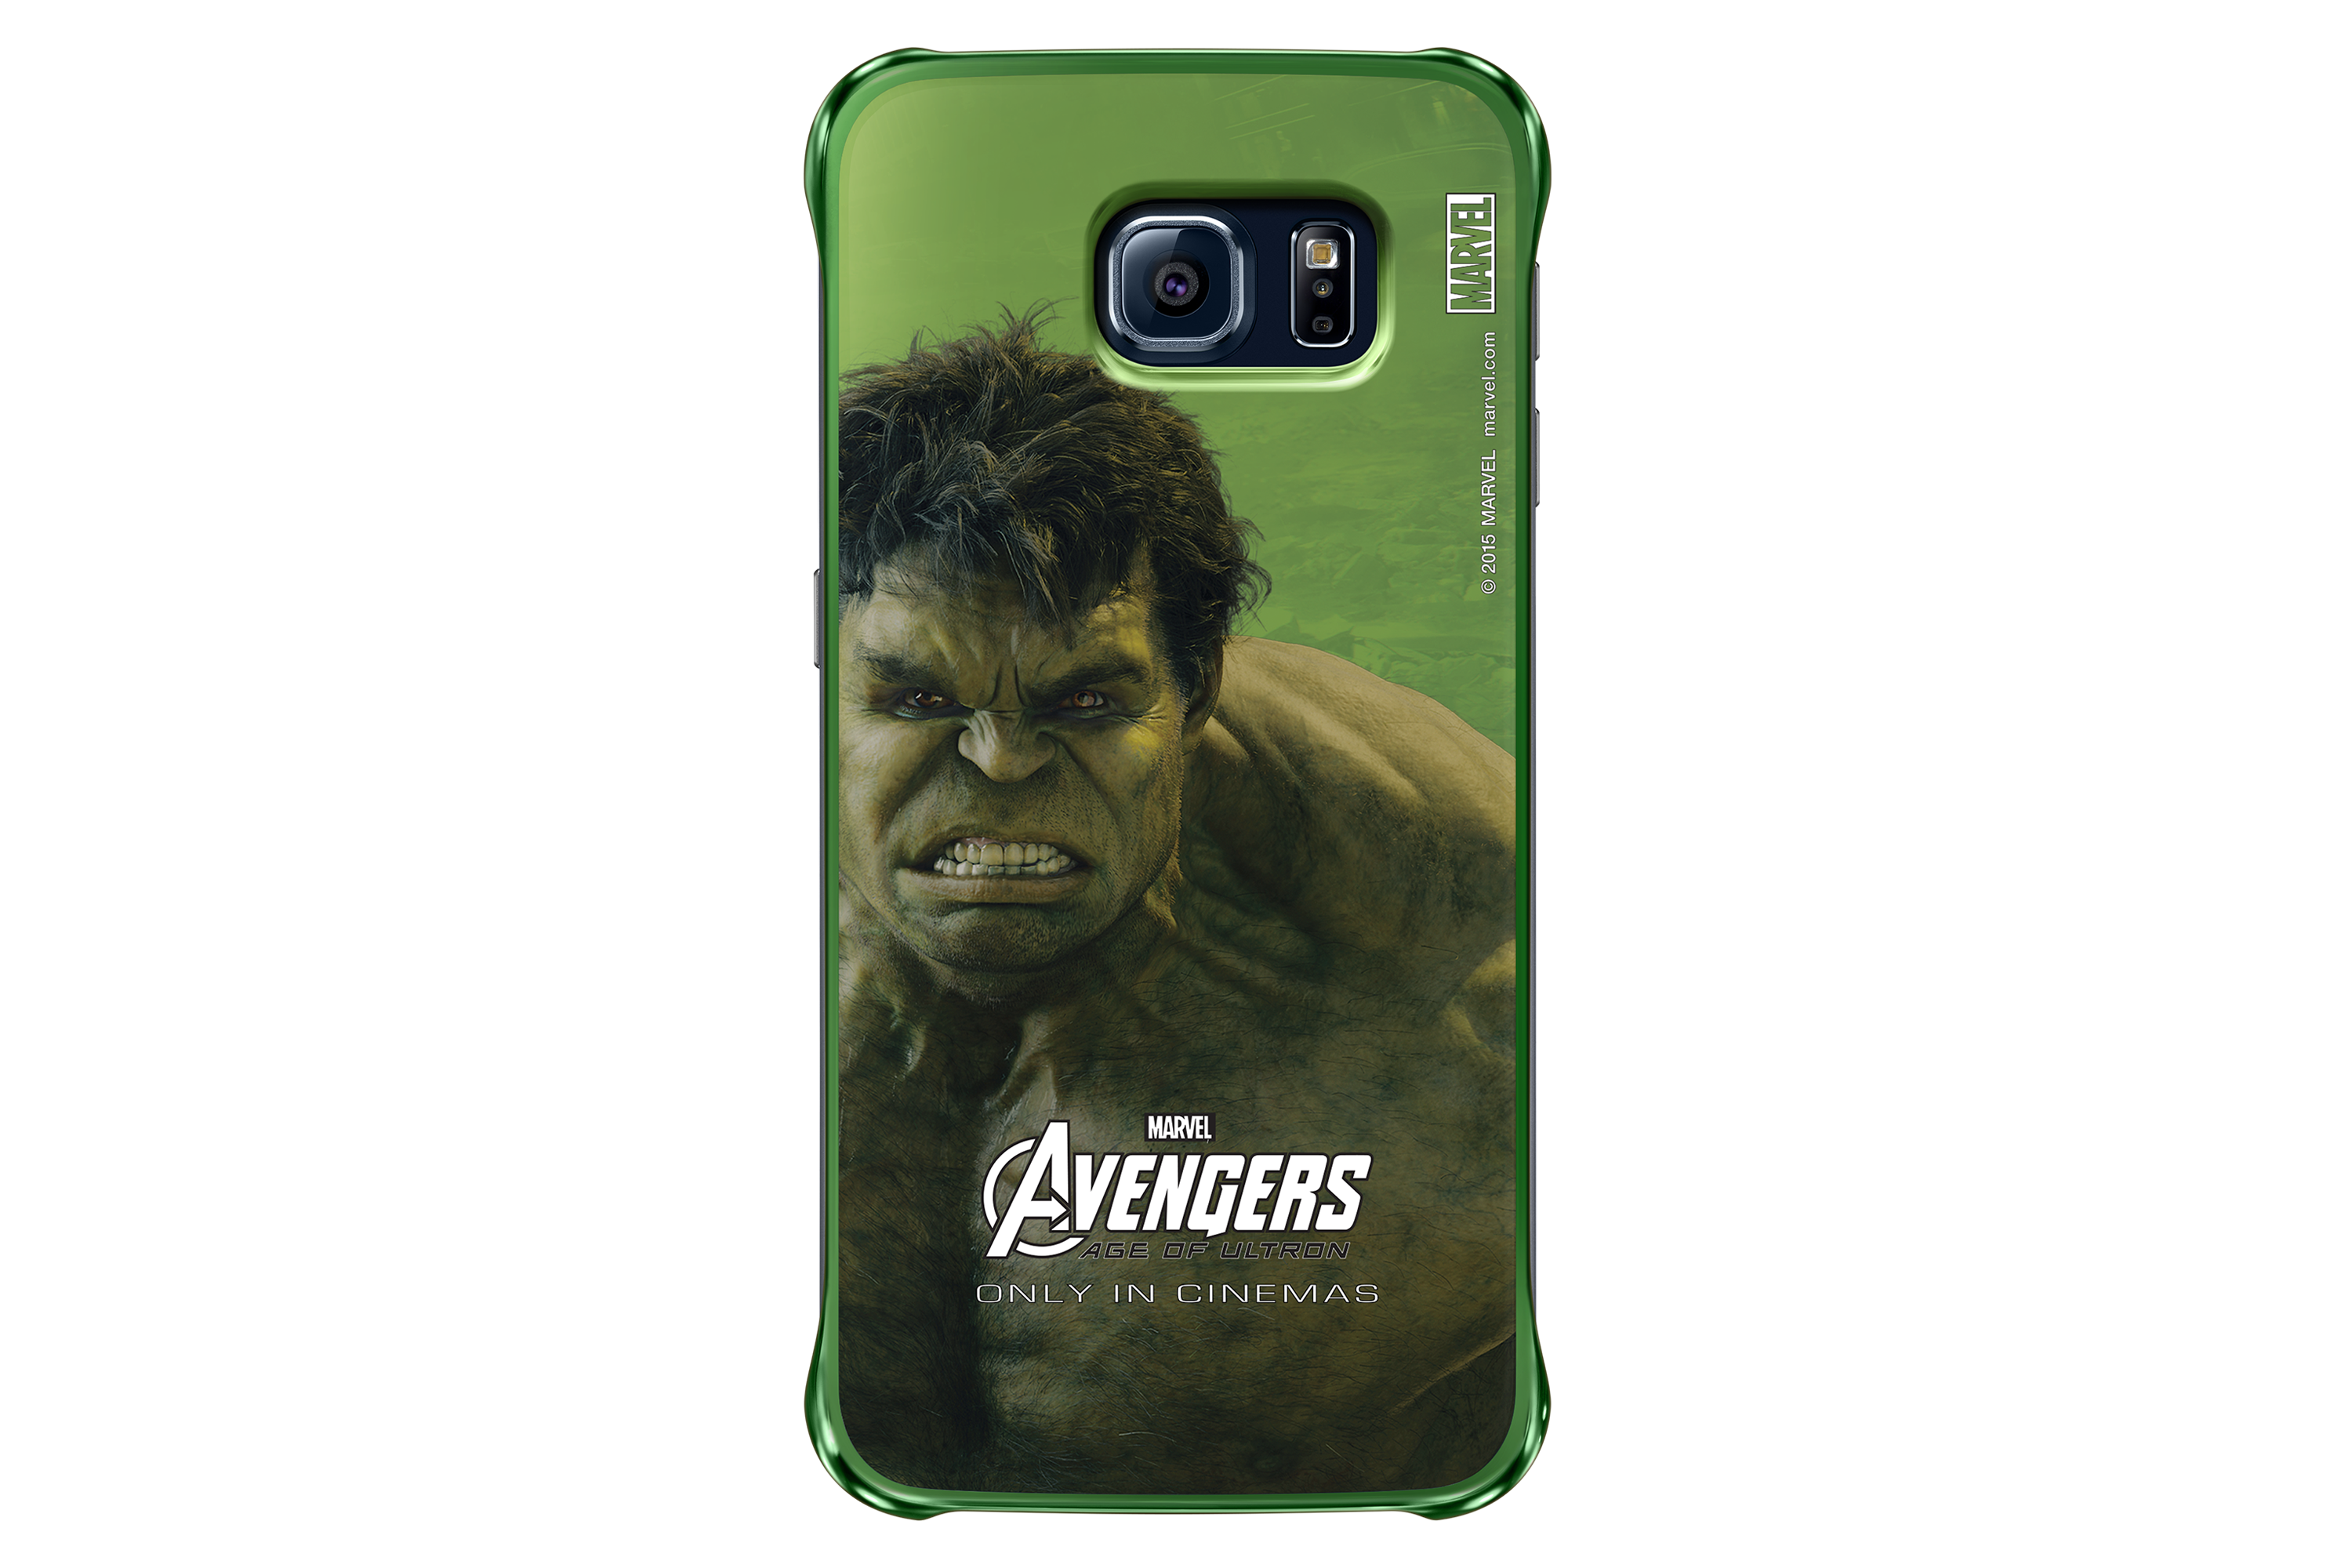 Galaxy S6 Clear Cover - Avengers Edition